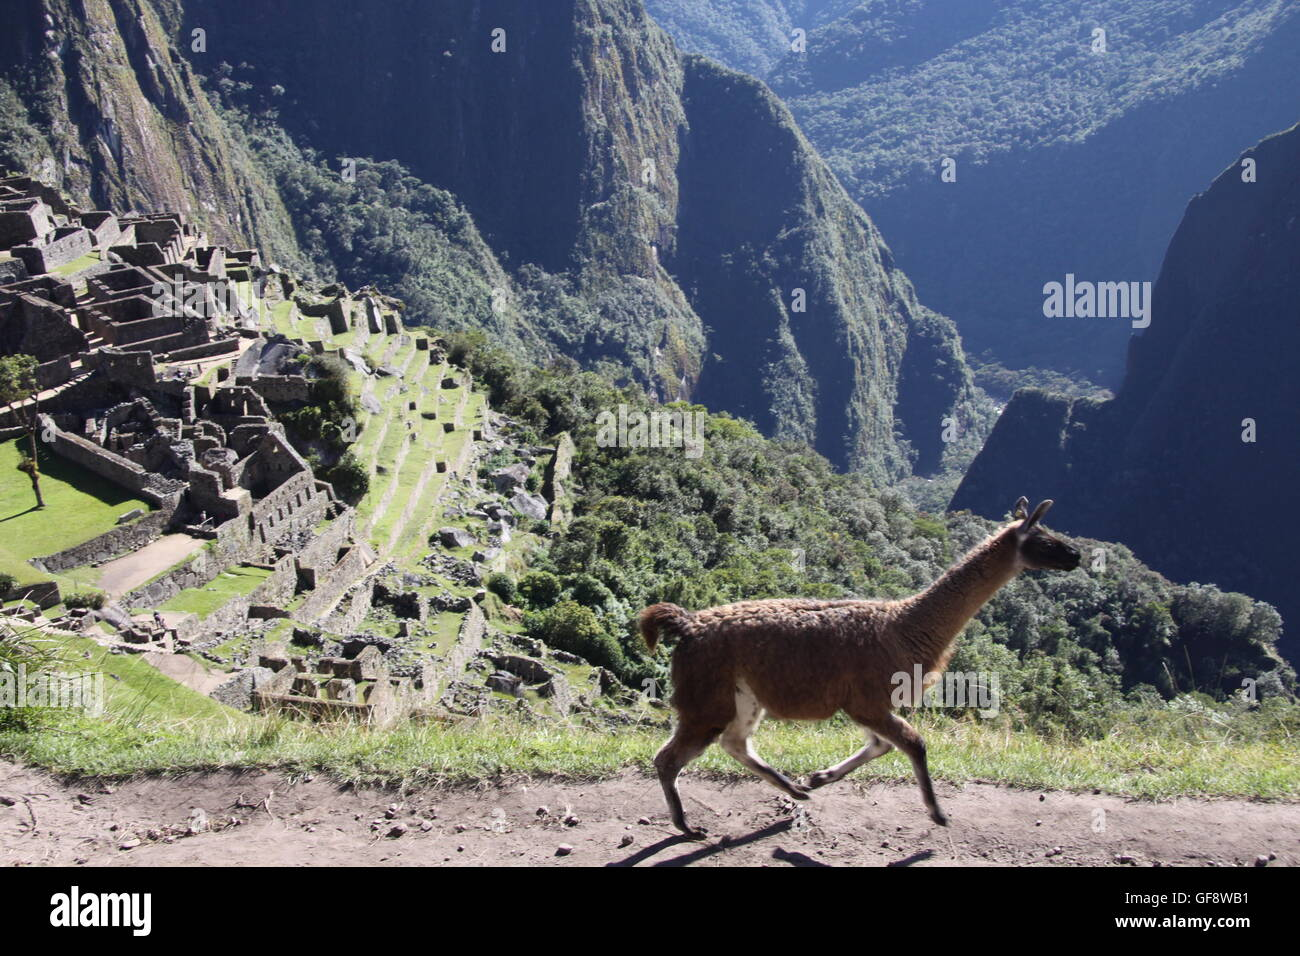 Llama at Machu Picchu, Sacred Valley, Peru - Stock Image